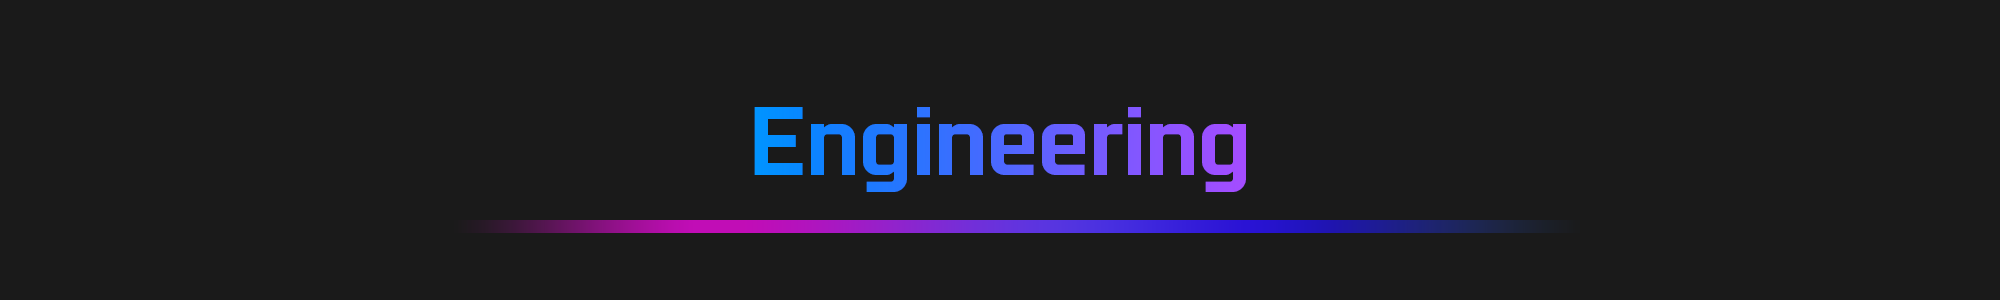 Engineering_title.png